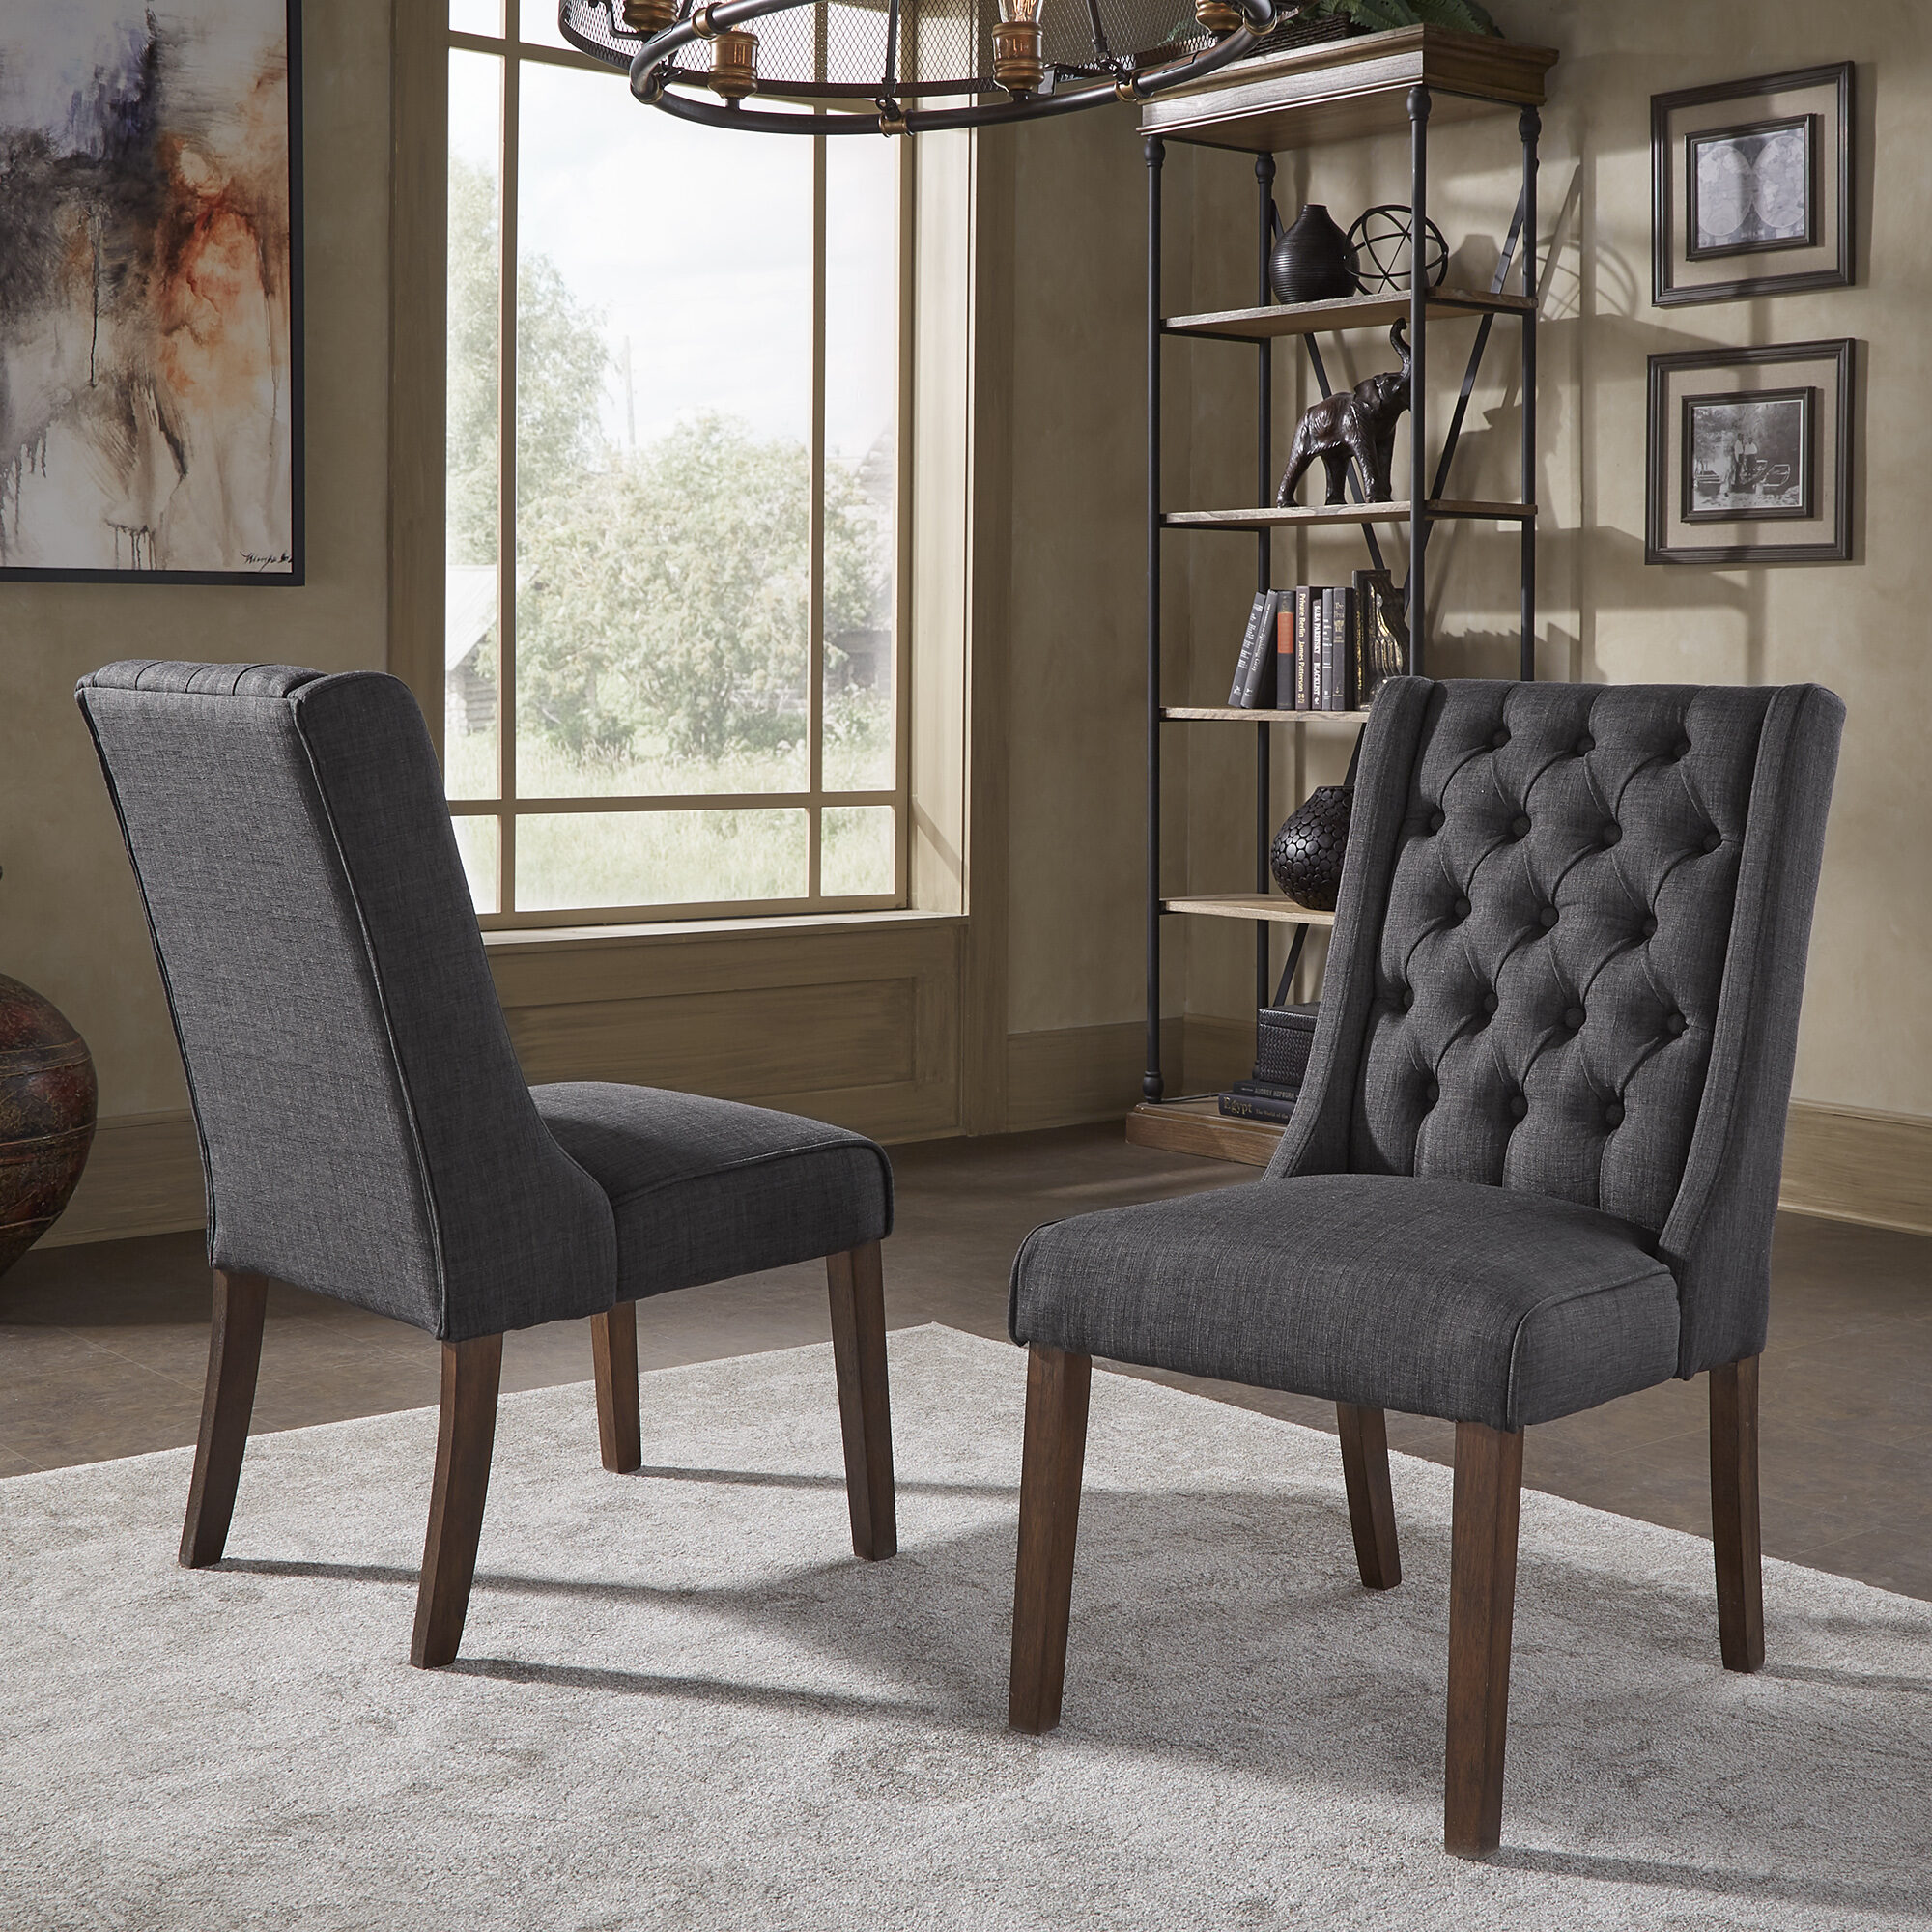 We could give you a thousand different dining room ideas and there are at least a thousand more different types of chairs. Here we have our Dark Grey Linen  Tufted Upholstered Side Chairs (Set of 2).